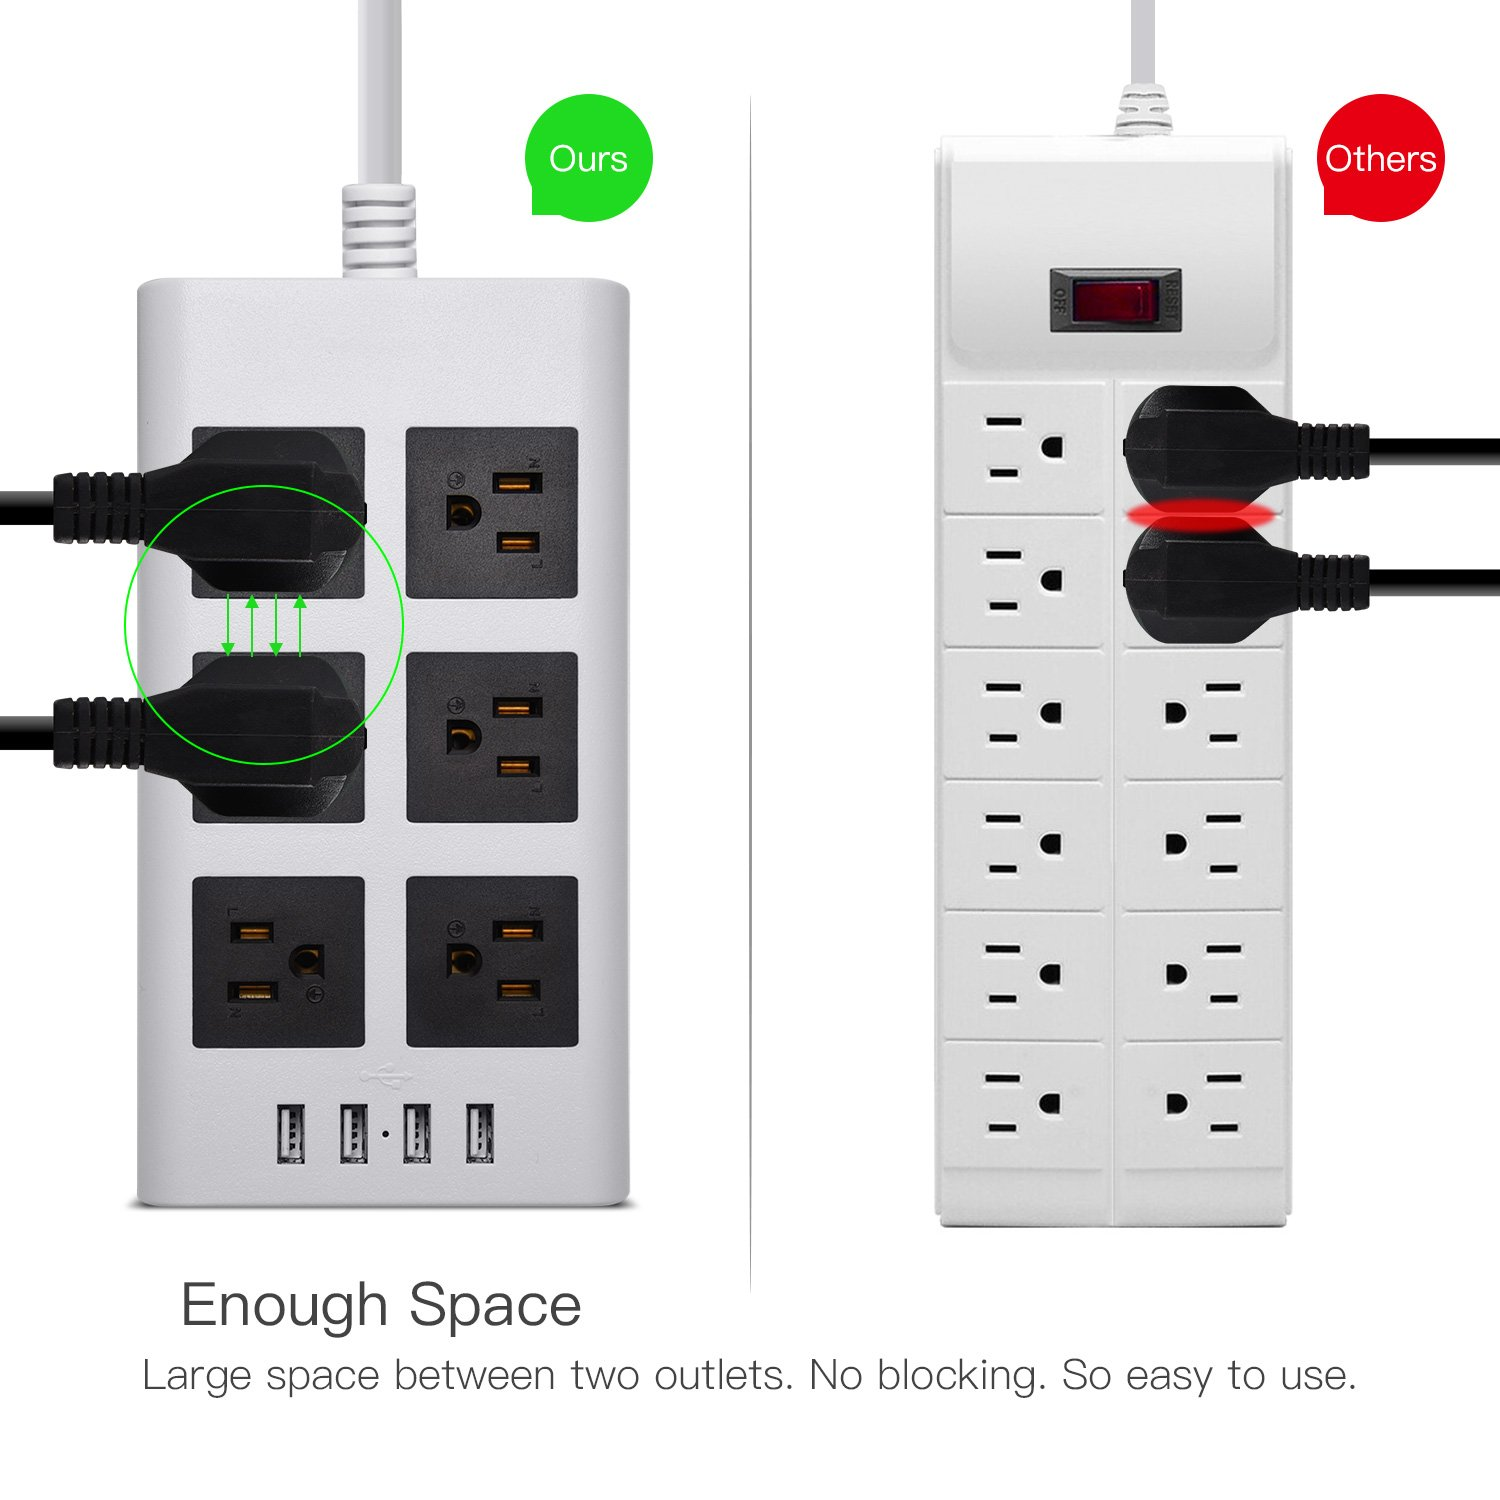 5V 2.4A USB Power Strip-JACKYLED Right Angle Plug 9.5ft Long Surge Protector(900J) 4 USB Ports 6 Outlets Total 3000W/15A Fast Charge Electric Outlets Fireproof for iPhone iPad Computer Etc by JACKYLED (Image #2)